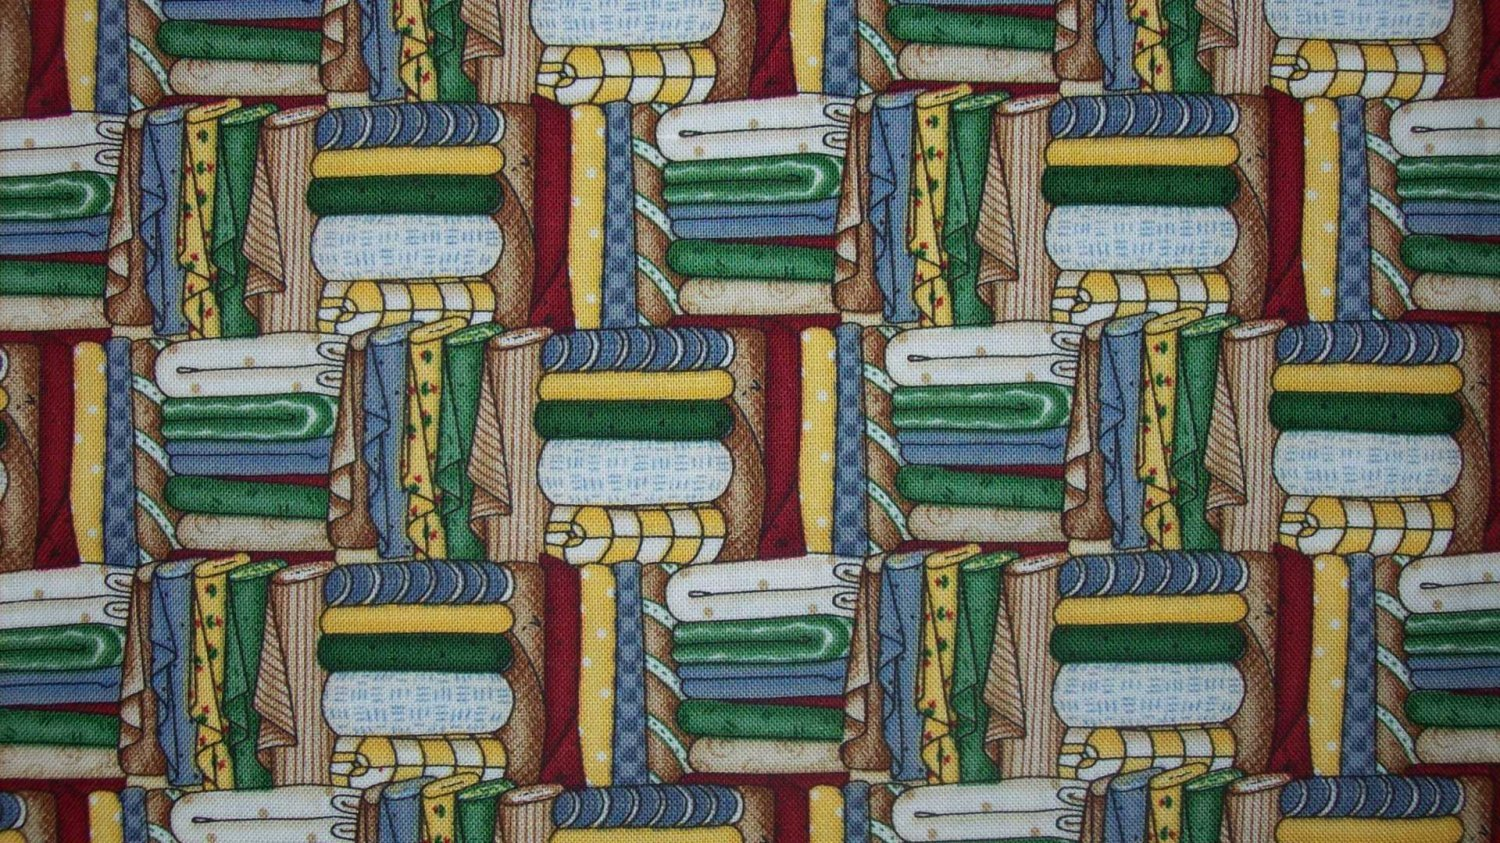 Yard creative woman quilts and bolts ssi debbie mumm